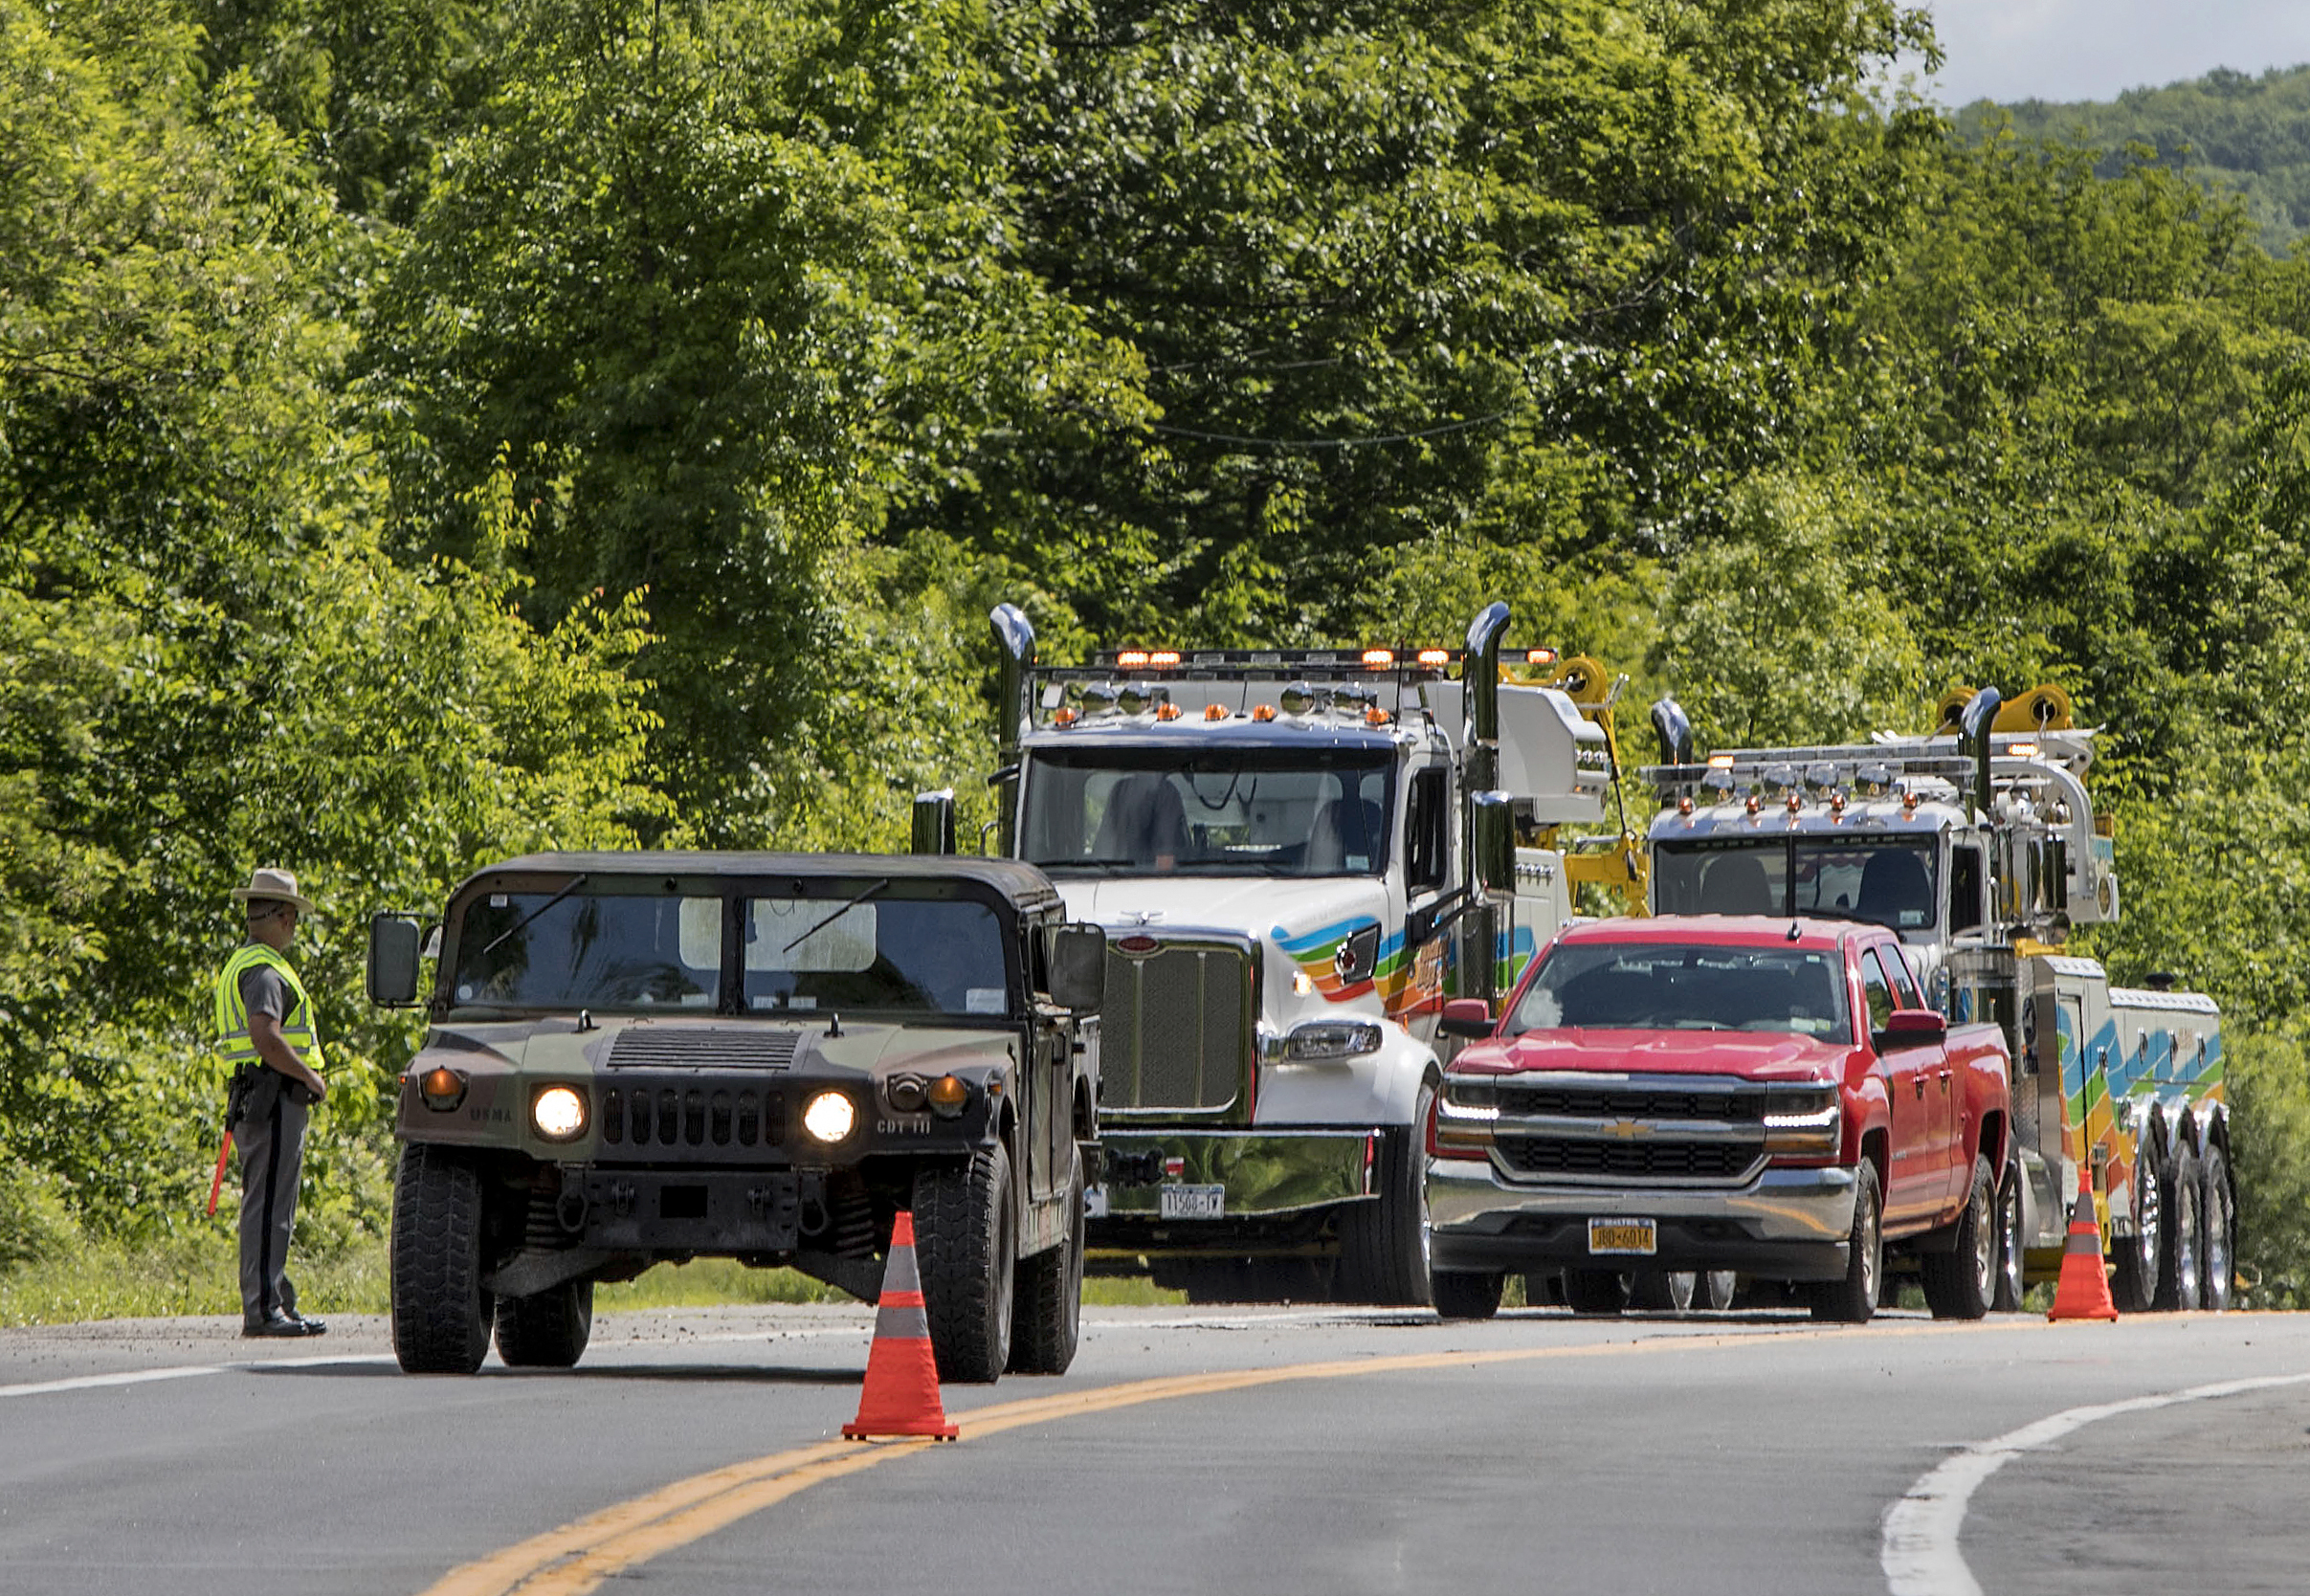 West Point accident kills at least one, injures almost two